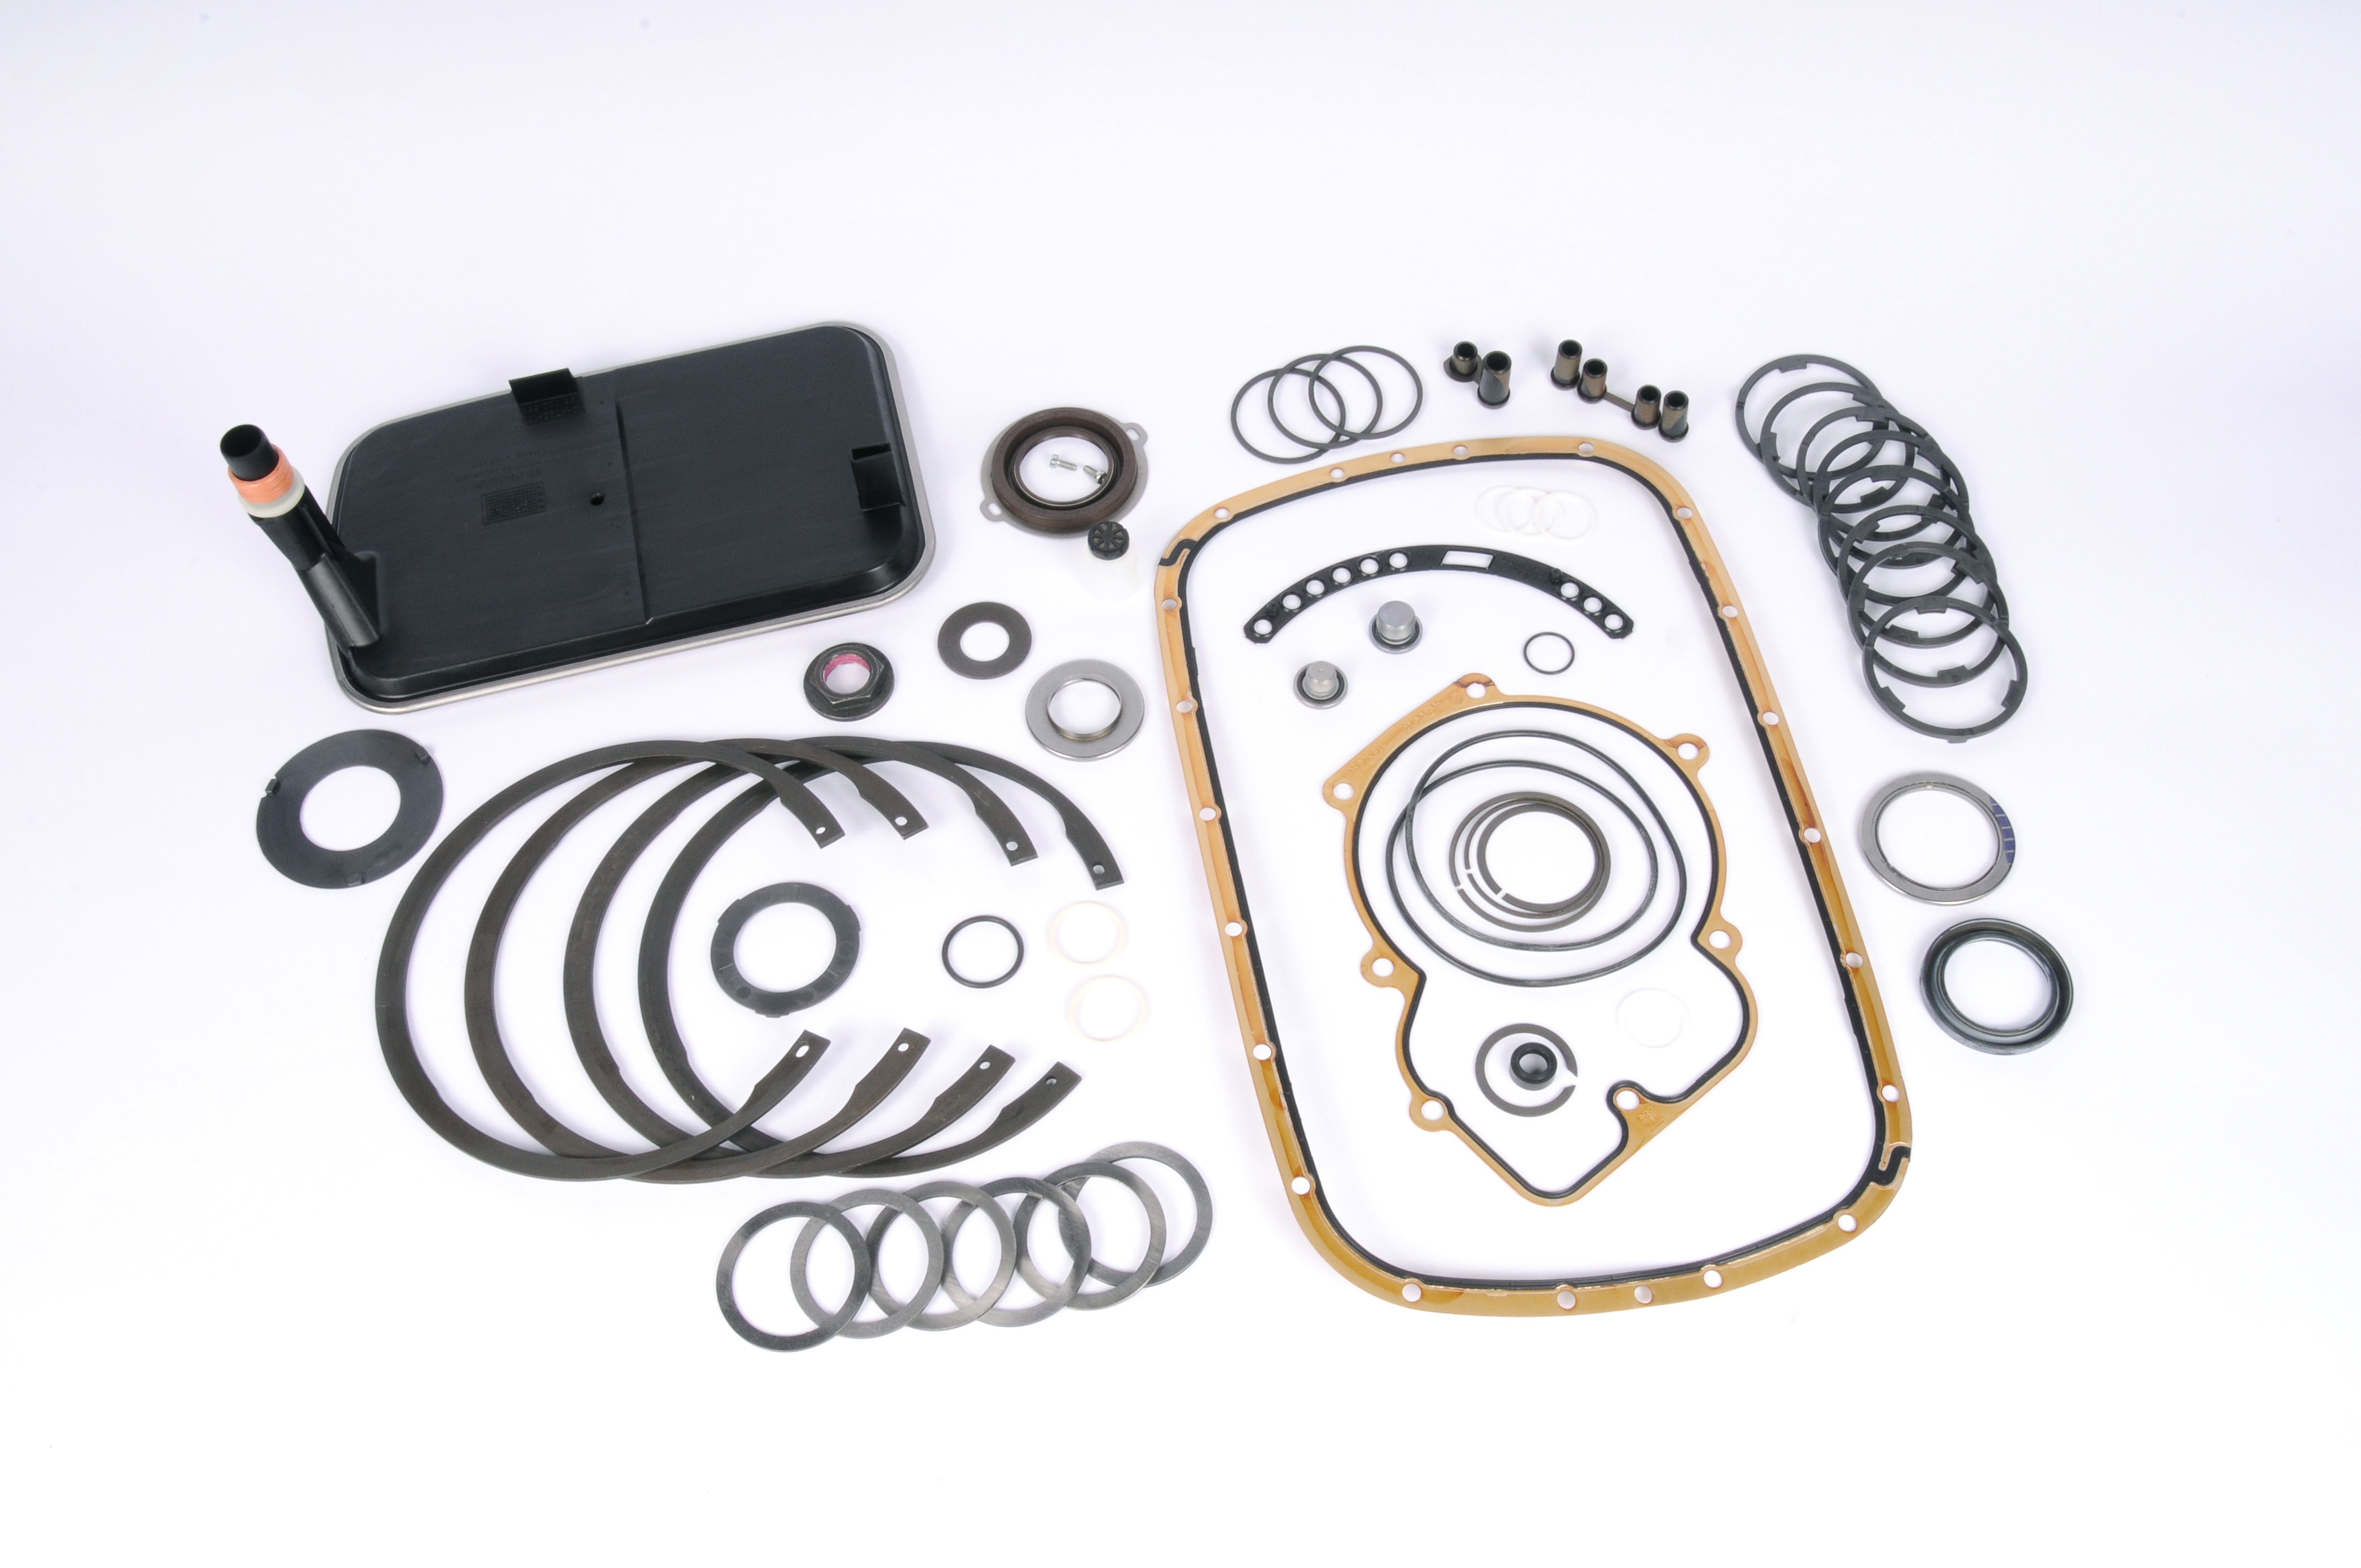 ACDELCO OE SERVICE - Auto Service Overhaul Trans Kit (w/ Gaskets, Seals, Retainers) - DCB 96042945